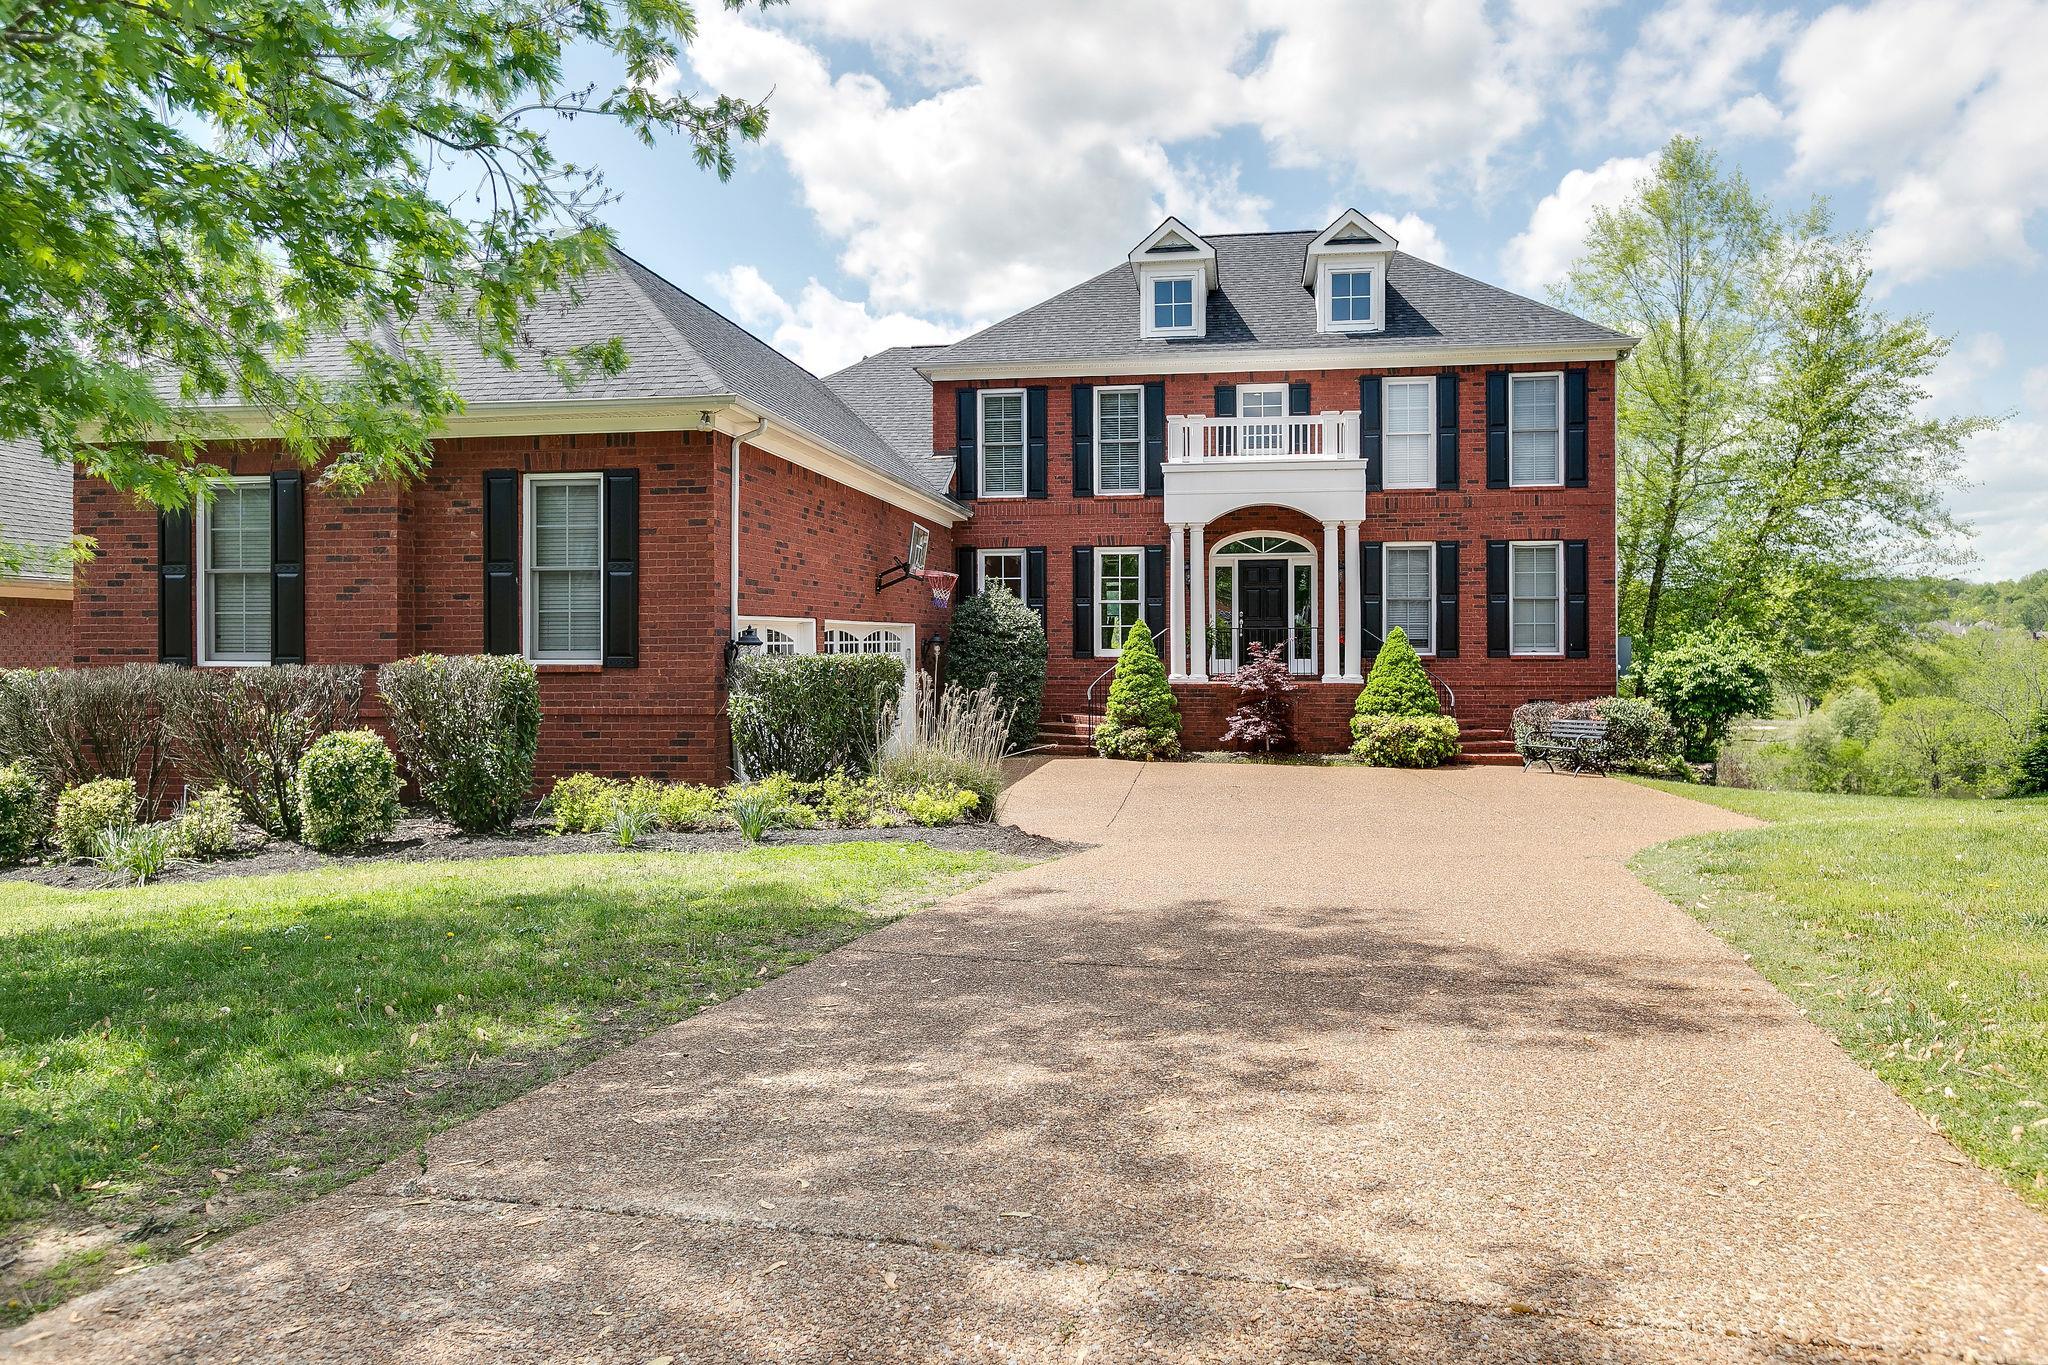 1278 Twelve Stones Xing, Goodlettsville, TN 37072 - Goodlettsville, TN real estate listing